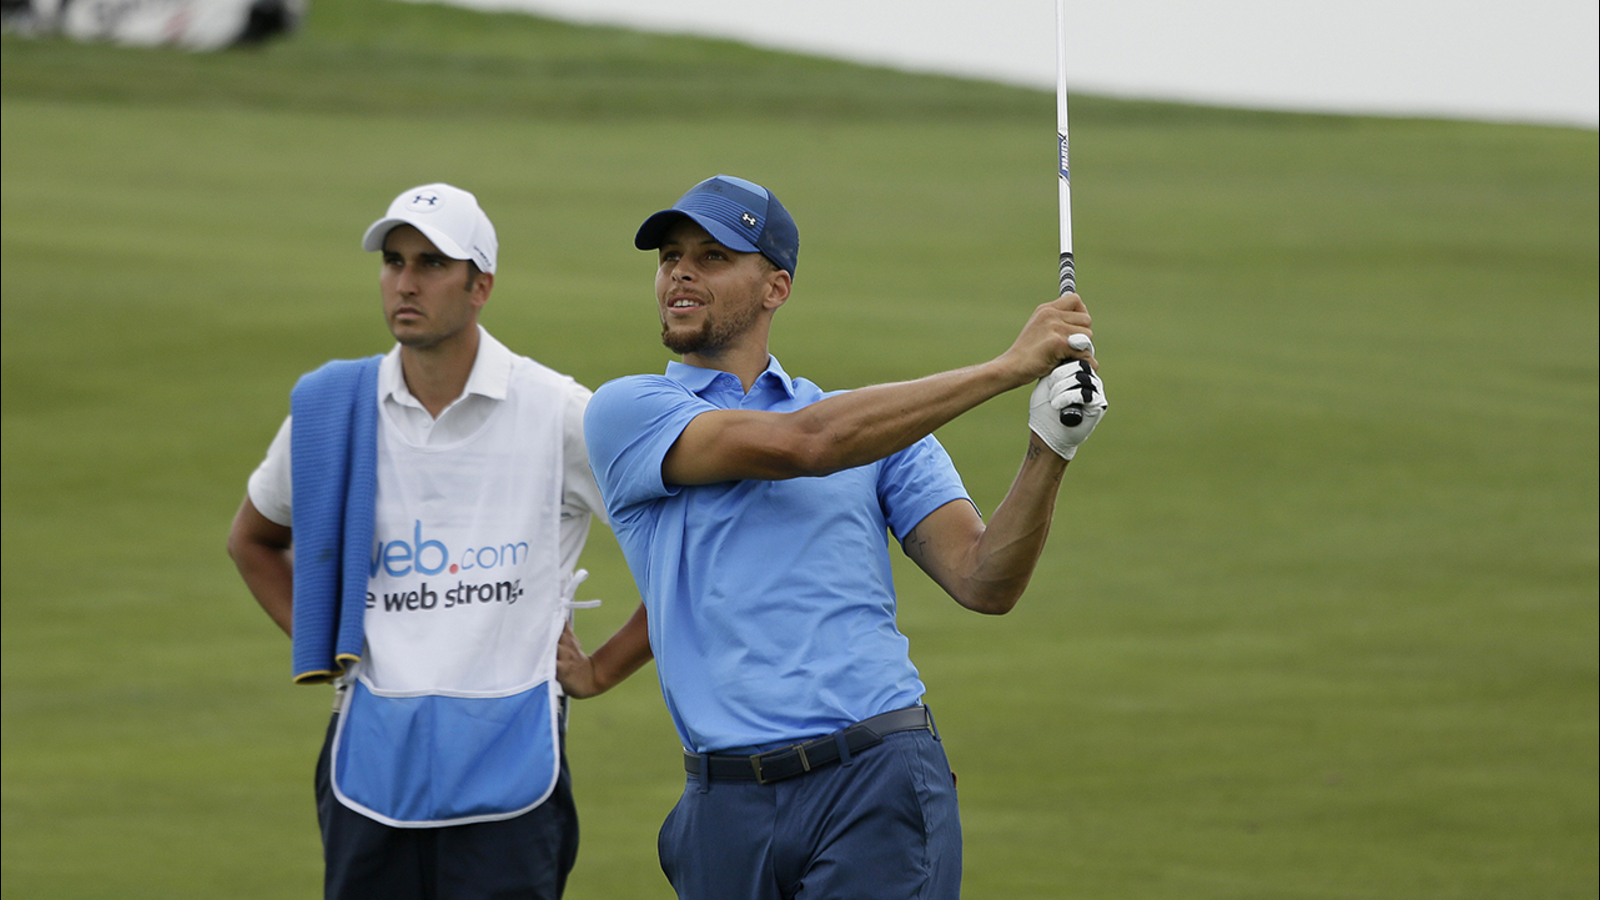 Steph Curry to announce donation to fund Howard University golf program, report says